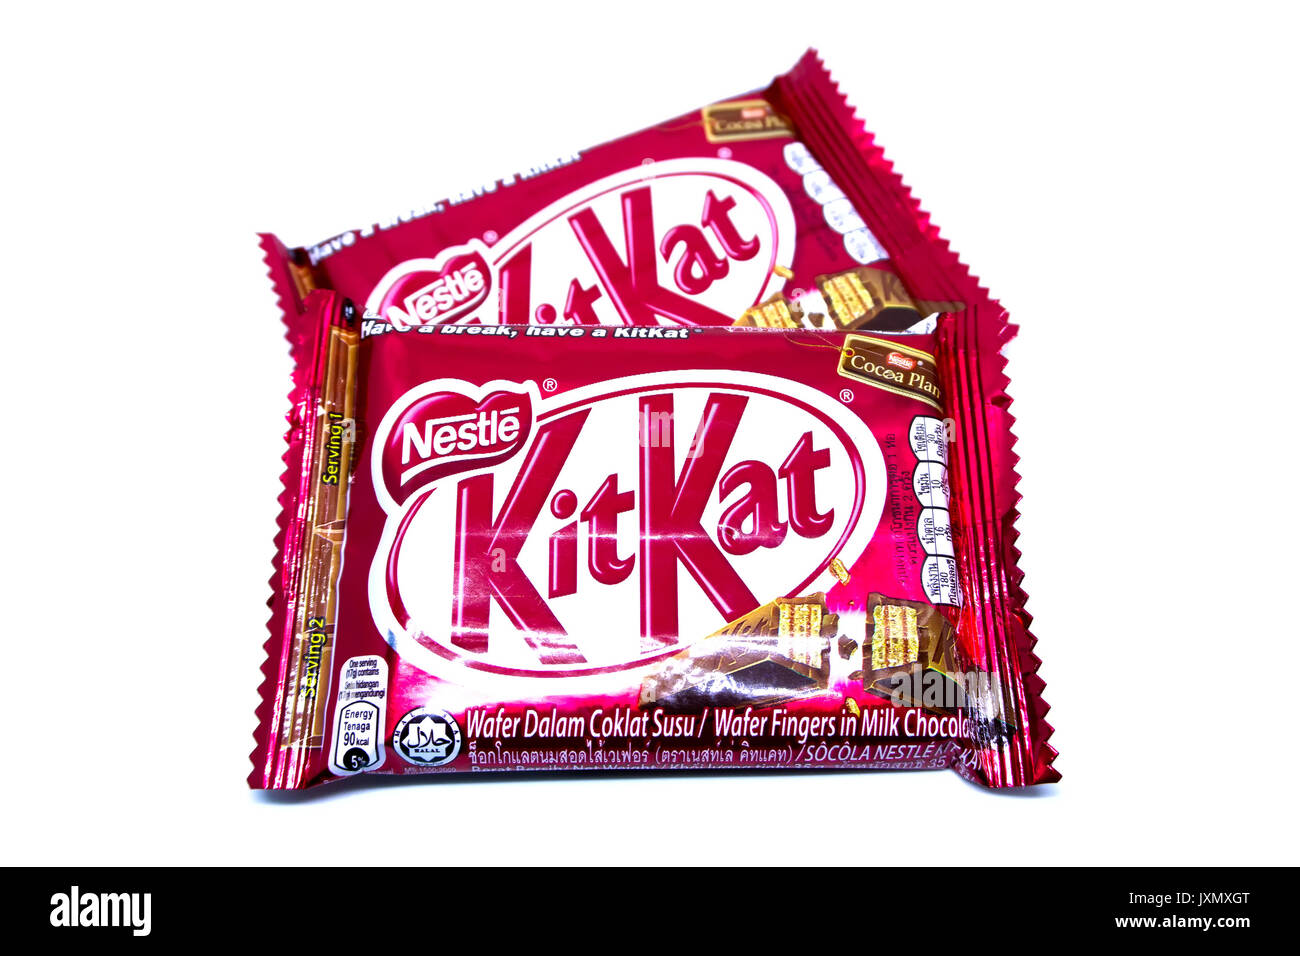 Kota Kinabalu, Malaysia - August 16, 2017: Kit Kat Chocolate Milk Wafer isolated on white background. Kit Kat bars are produced by Nestle. Brand Kit K - Stock Image